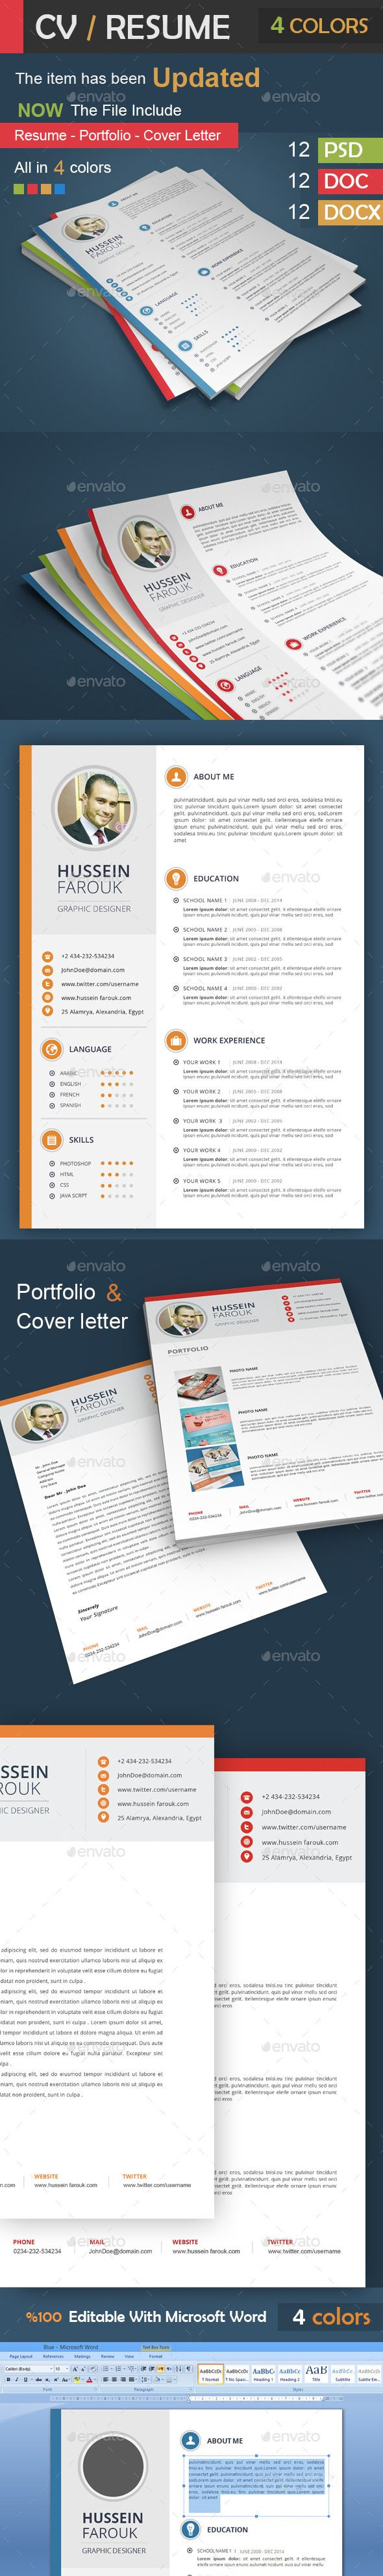 graphic design resume template%0A CV   Resume  Portfolio  Cover Letter